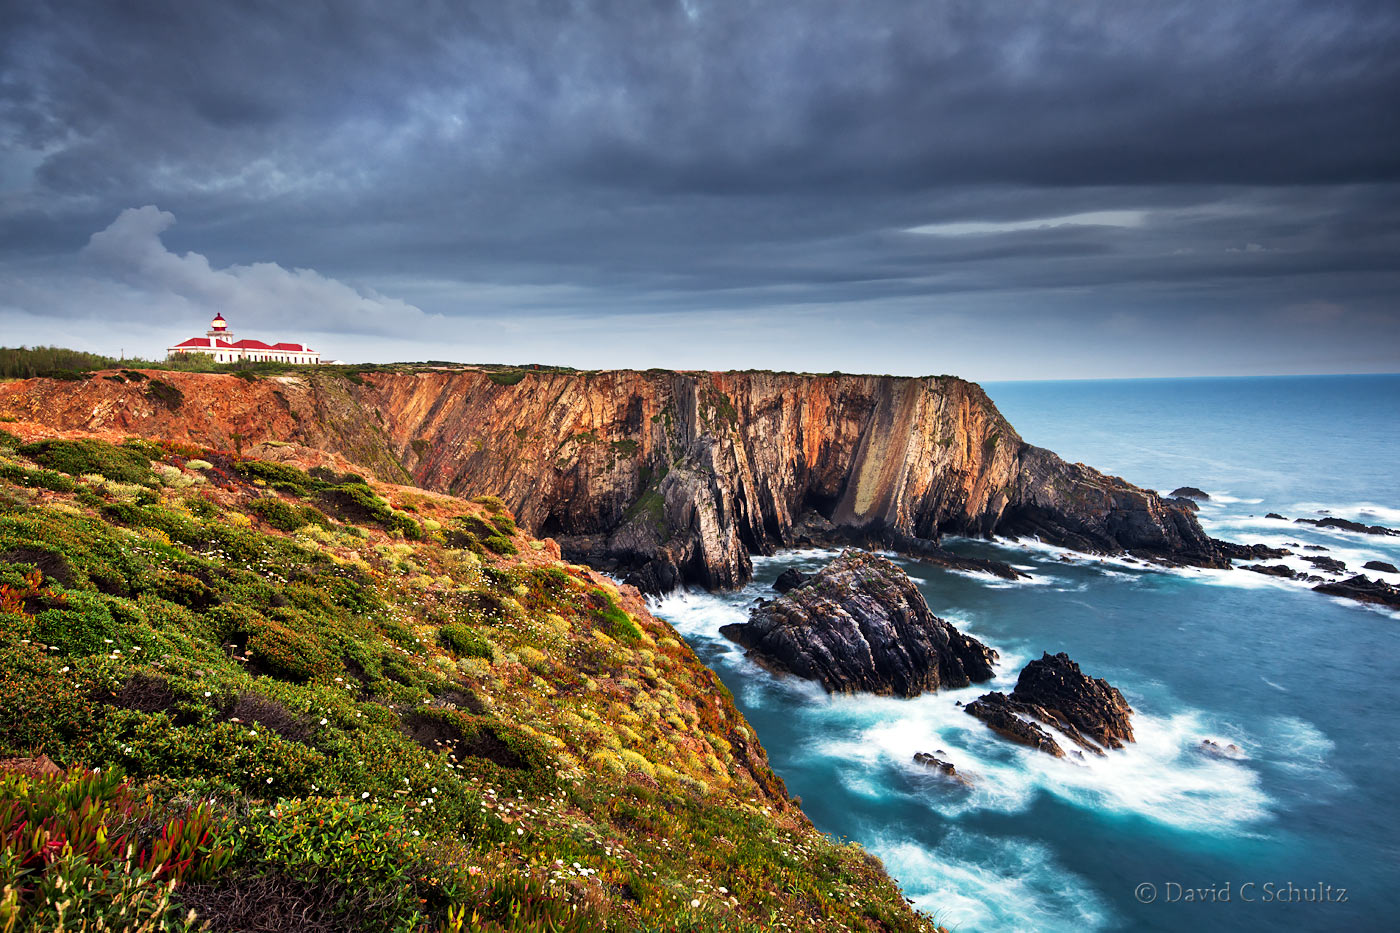 Cabo Sardo Lighthouse, Portugal - Image #57-1882